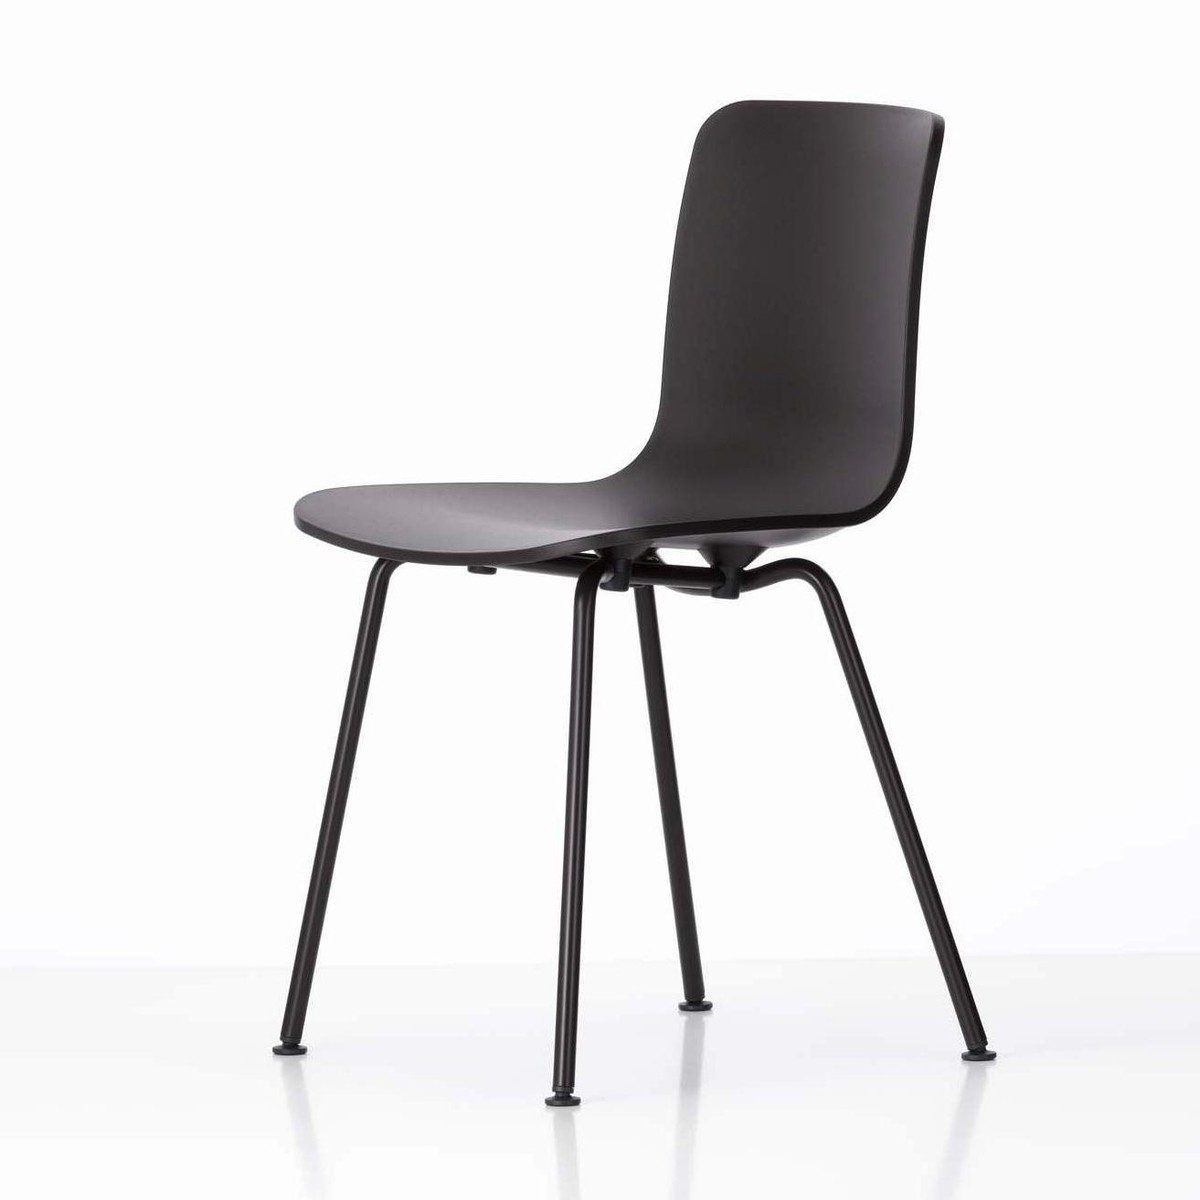 Hal tube chaise en structure noire vitra for Chaise eames vitra soldes